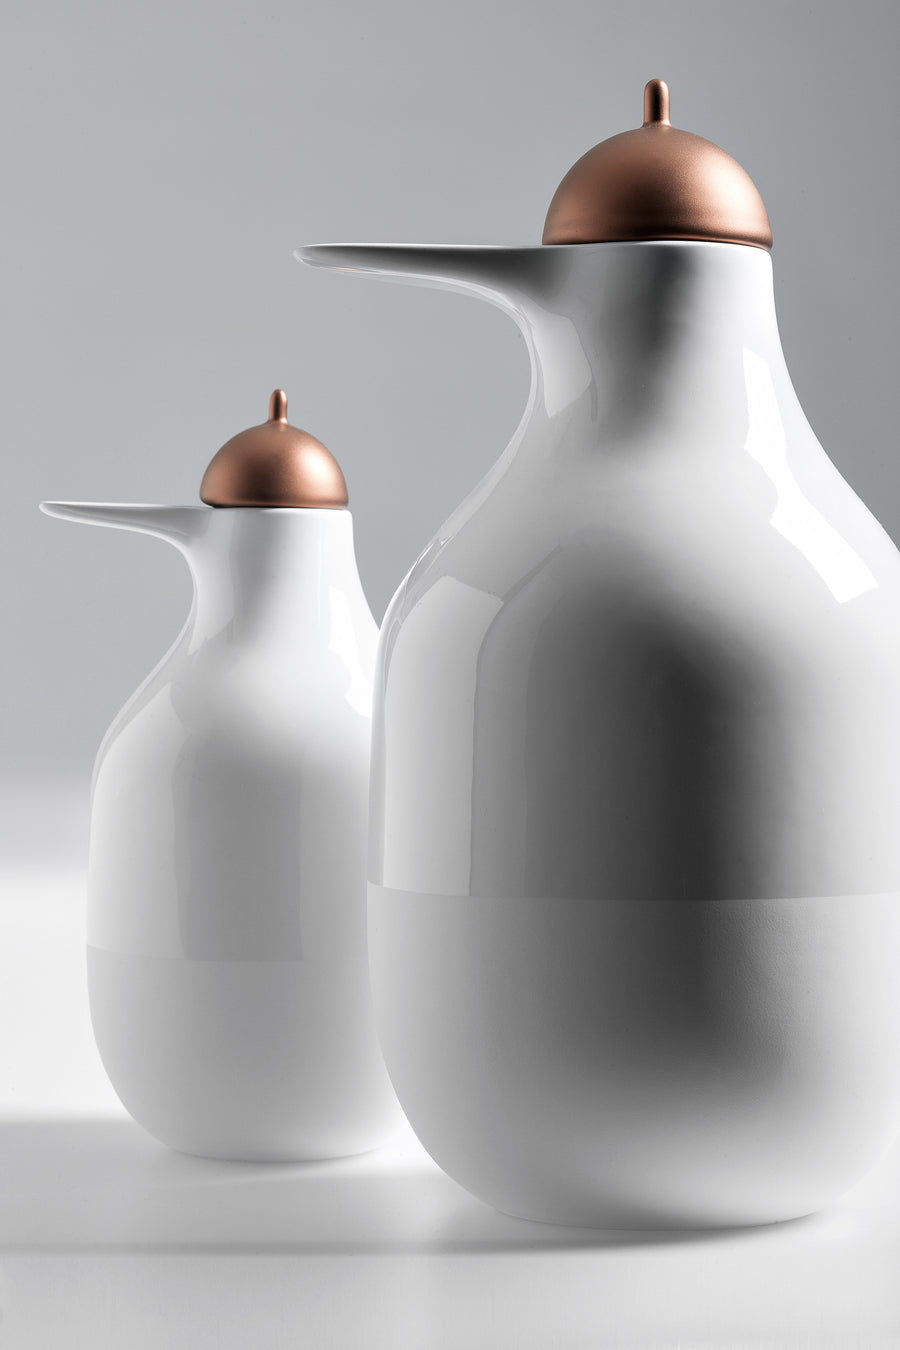 PELLICANO Decanter by Jaime Hayon for Bosa - DUPLEX DESIGN